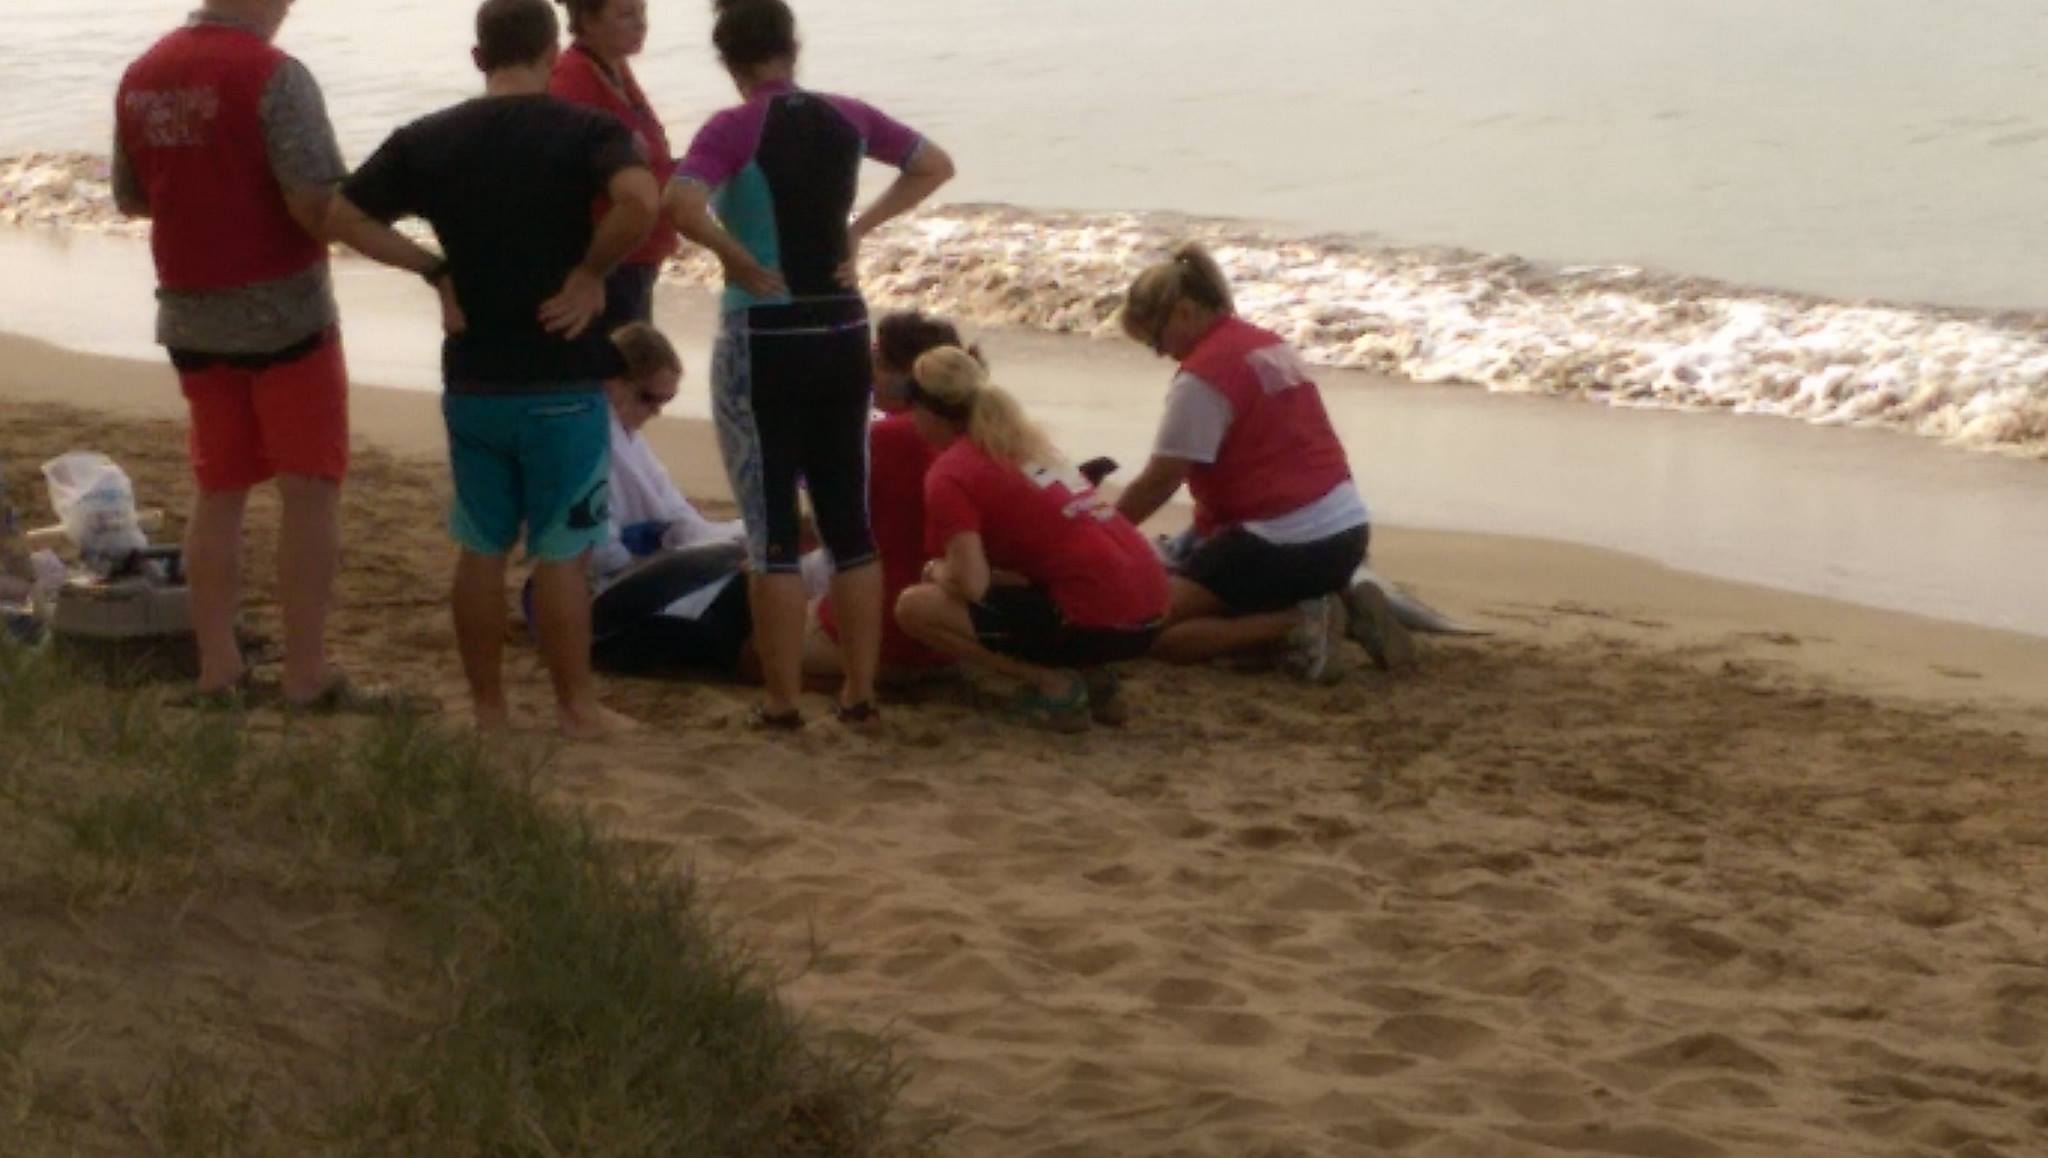 Marine mammal rescue at Sugar Beach in South Maui, 11.22.16. PC: Scot Prince